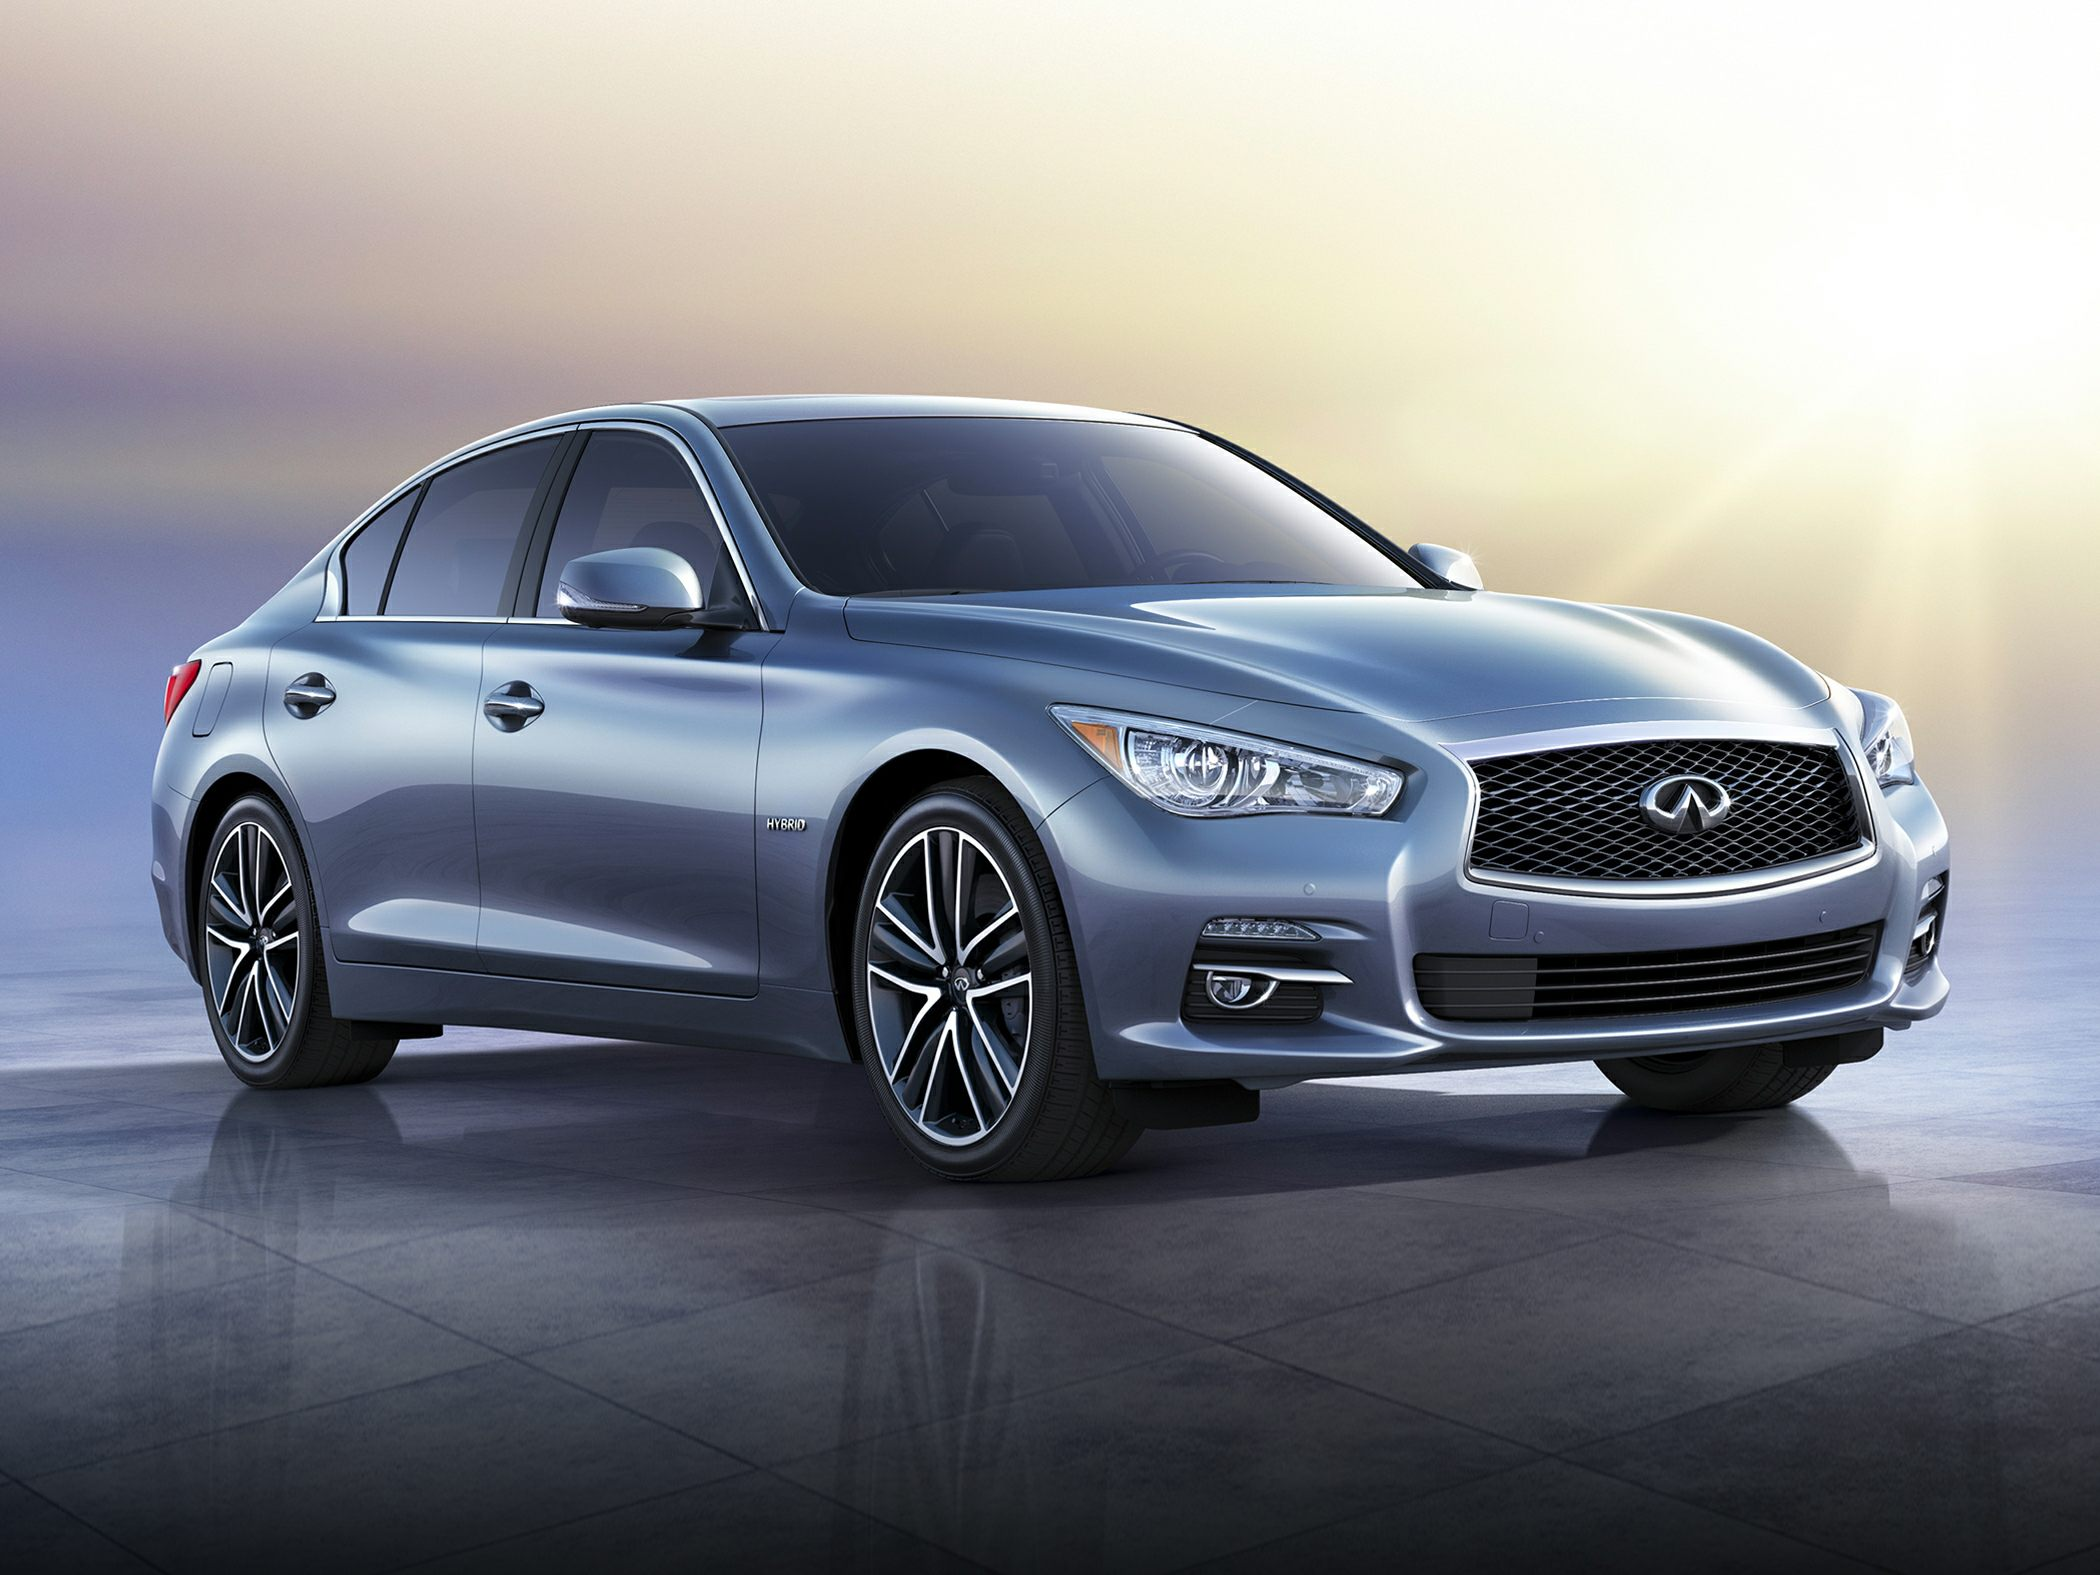 infinity deals infiniti leasing lease business car select